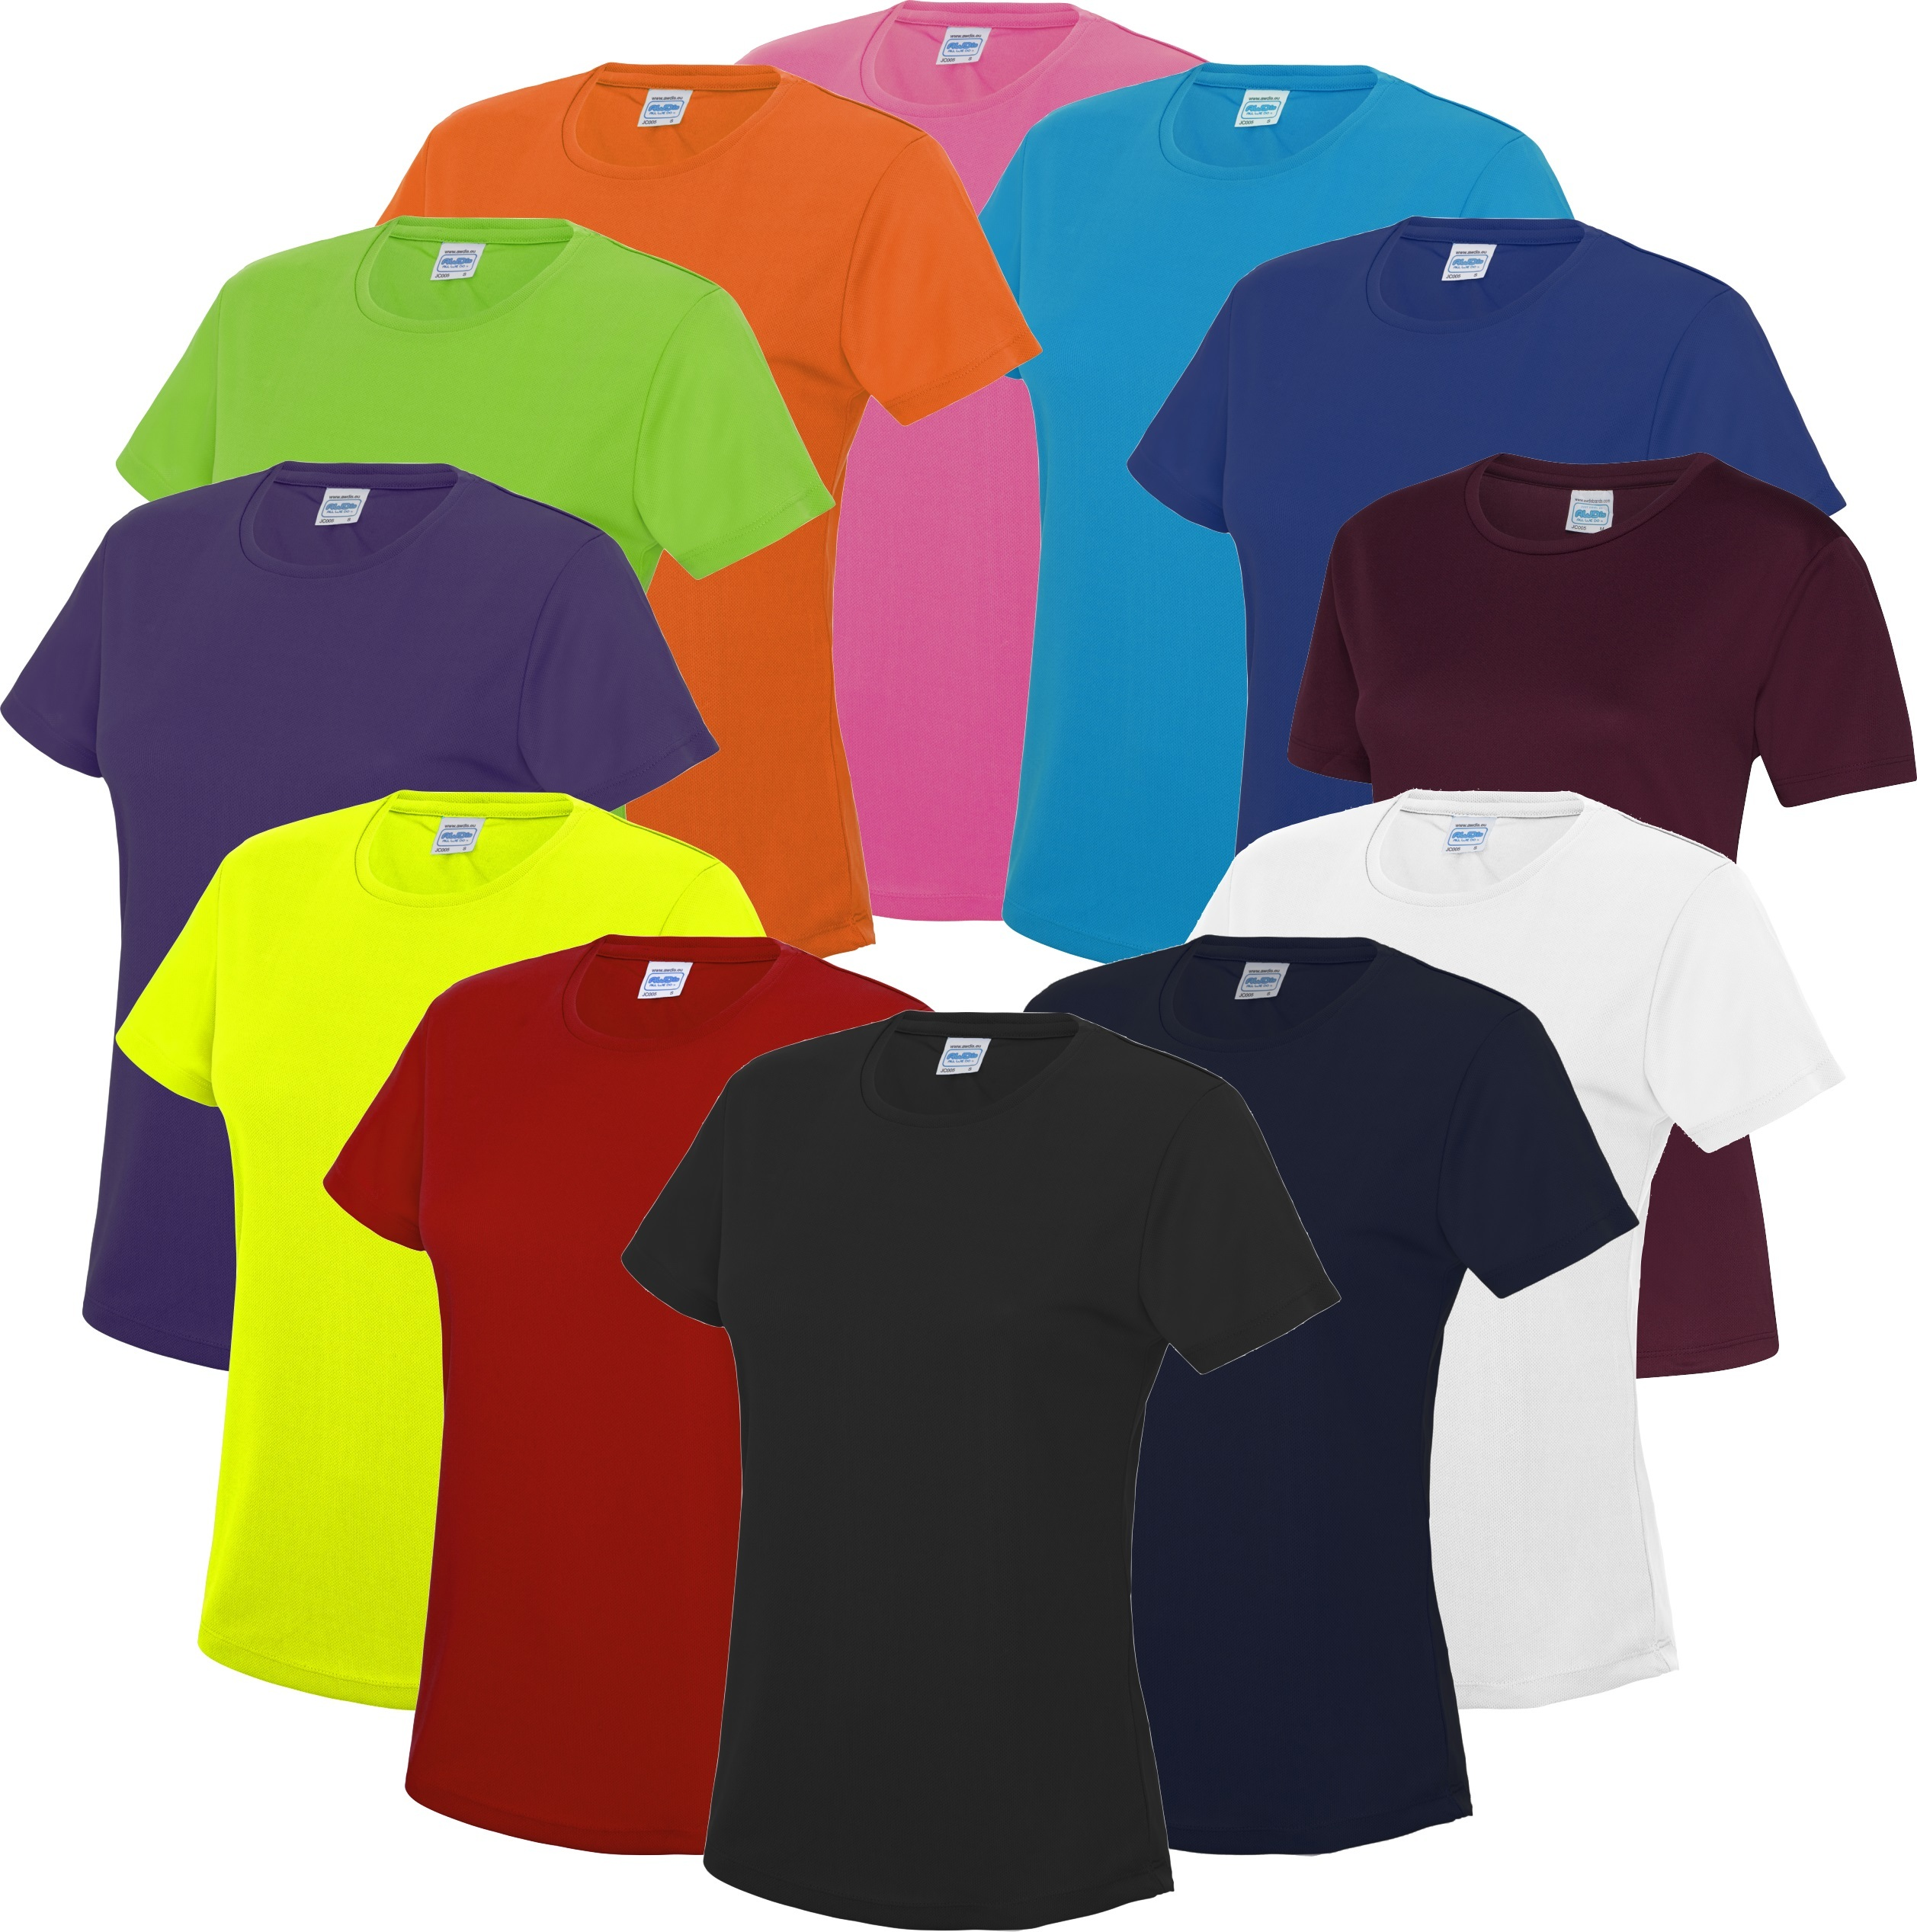 Women's Tech T-Shirts